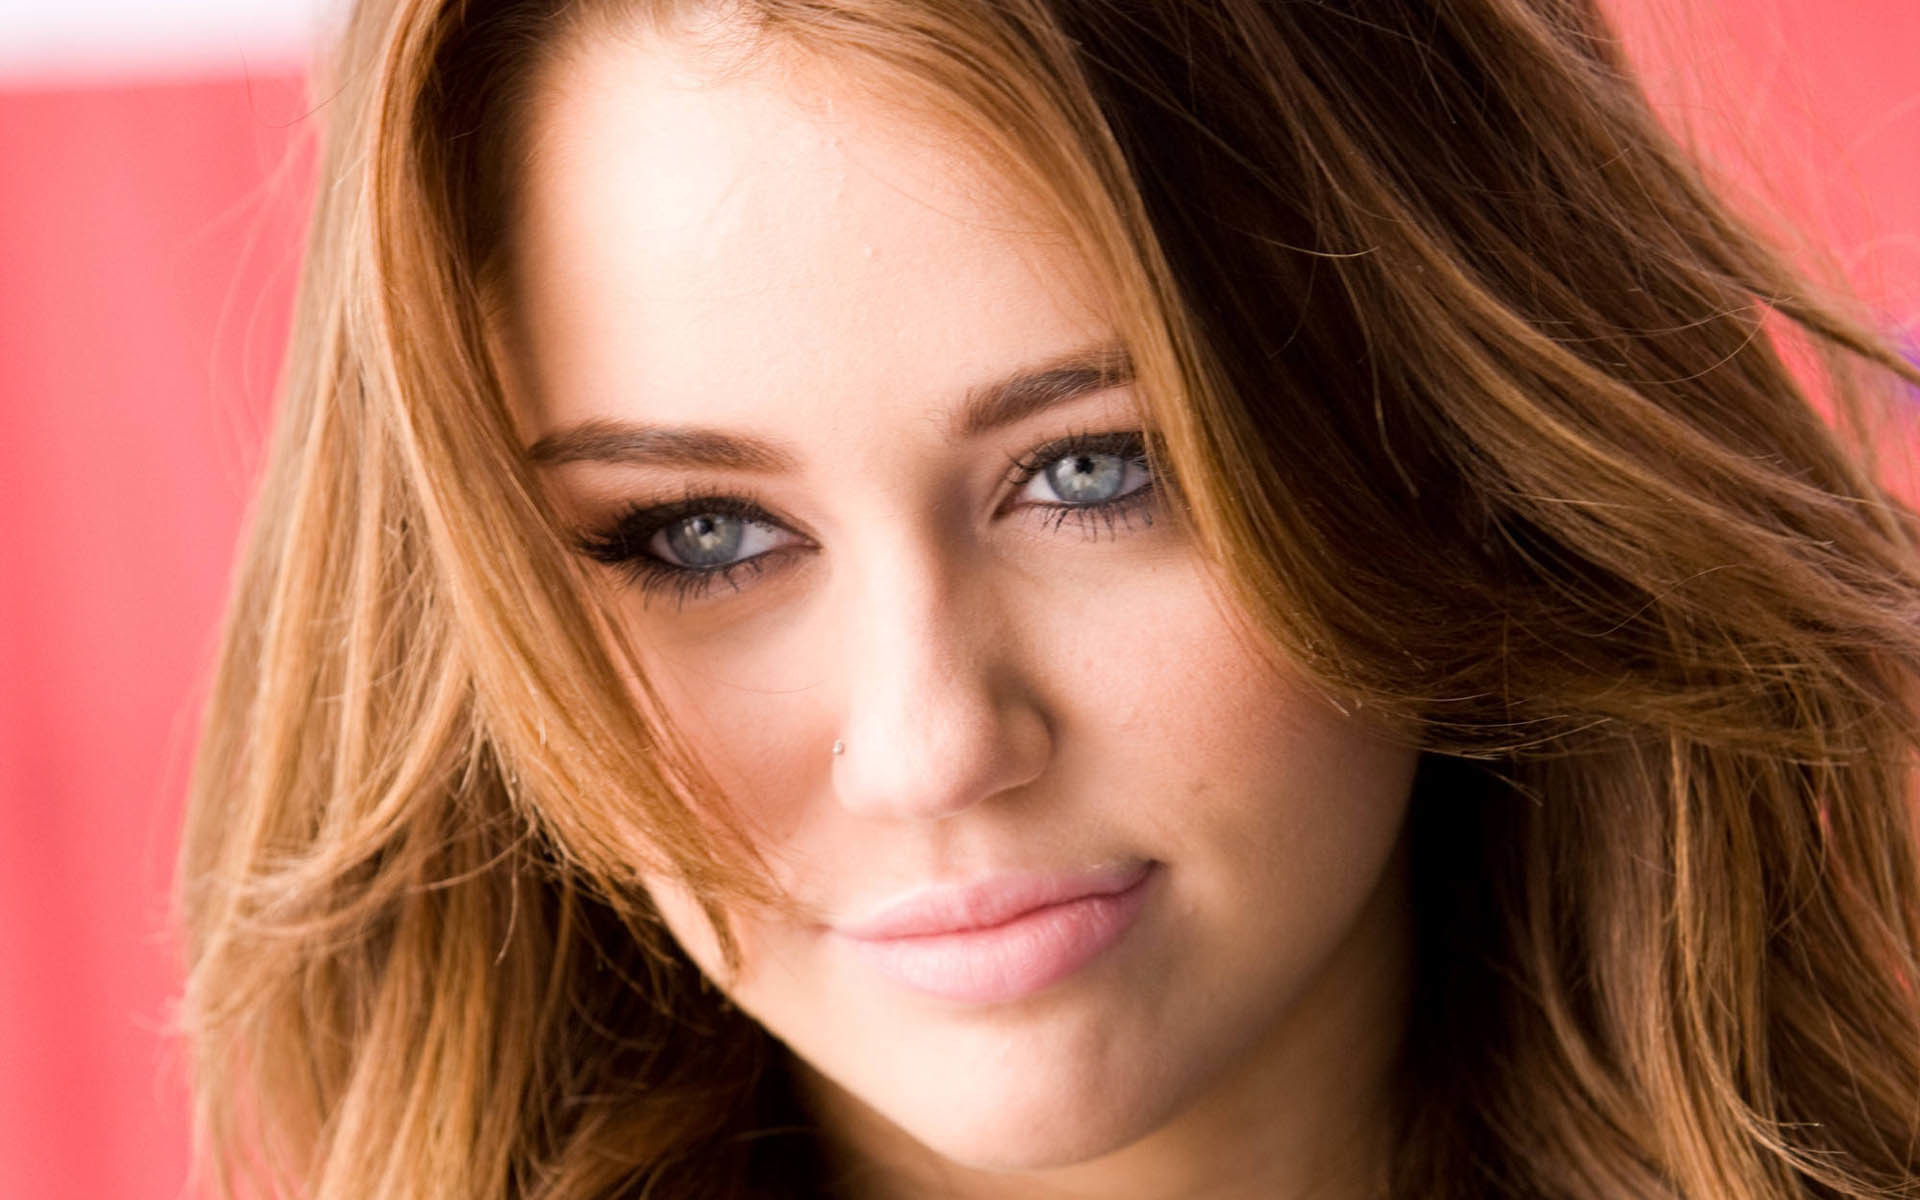 1920x1200 miley-cyrus-hd-wallpapers-6 | Miley Cyrus HD Wallpapers | Pinterest | Miley  cyrus, Hd wallpaper and Pretty people